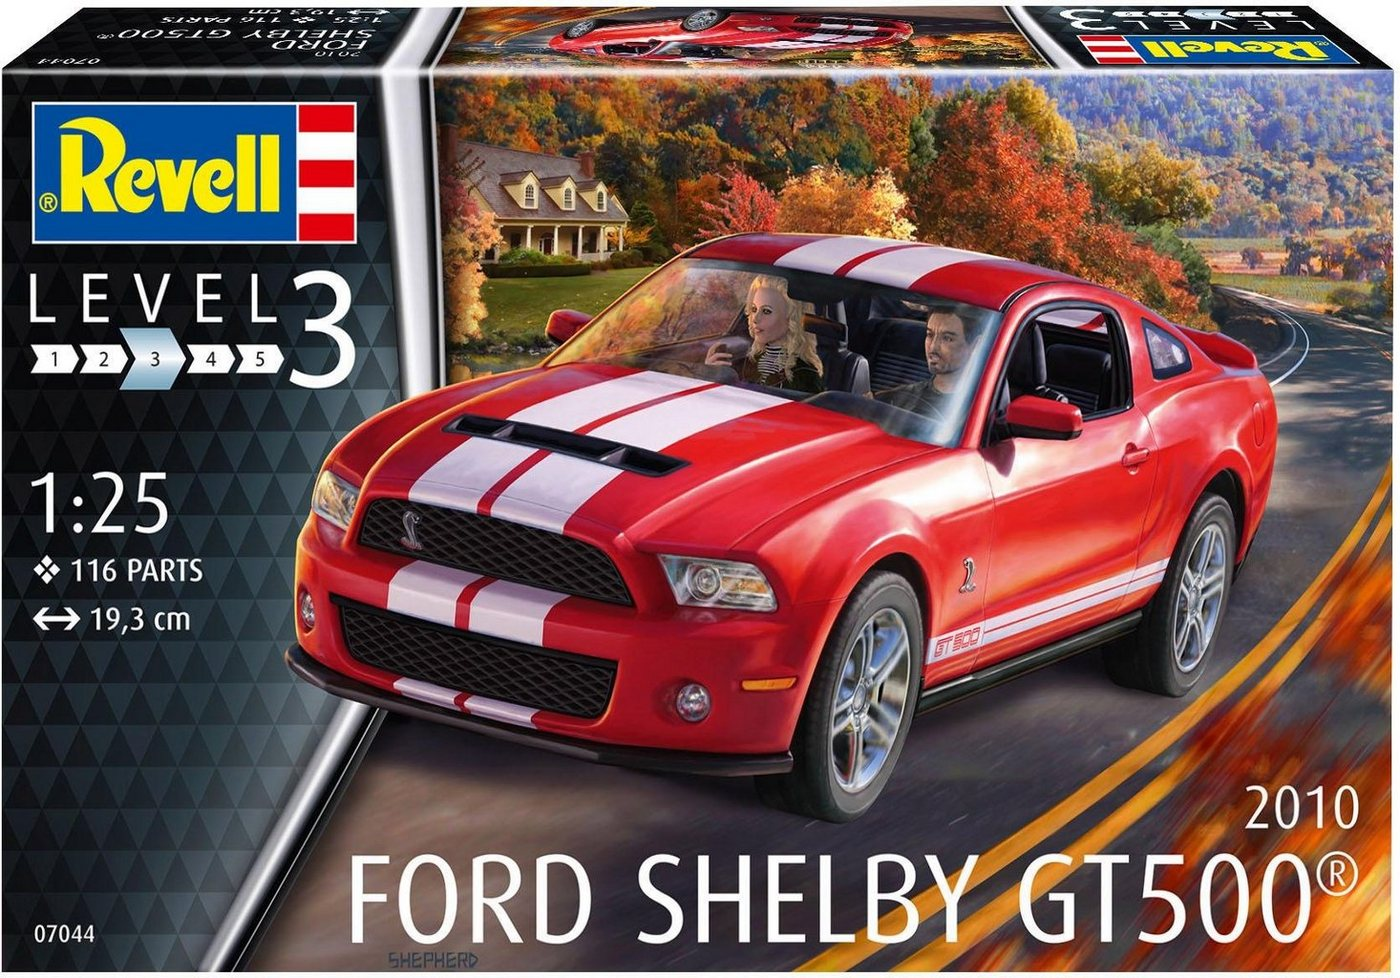 Revell Modellbausatz Auto, Maßstab 1:25, »2010 Ford Shelby GT 500®«